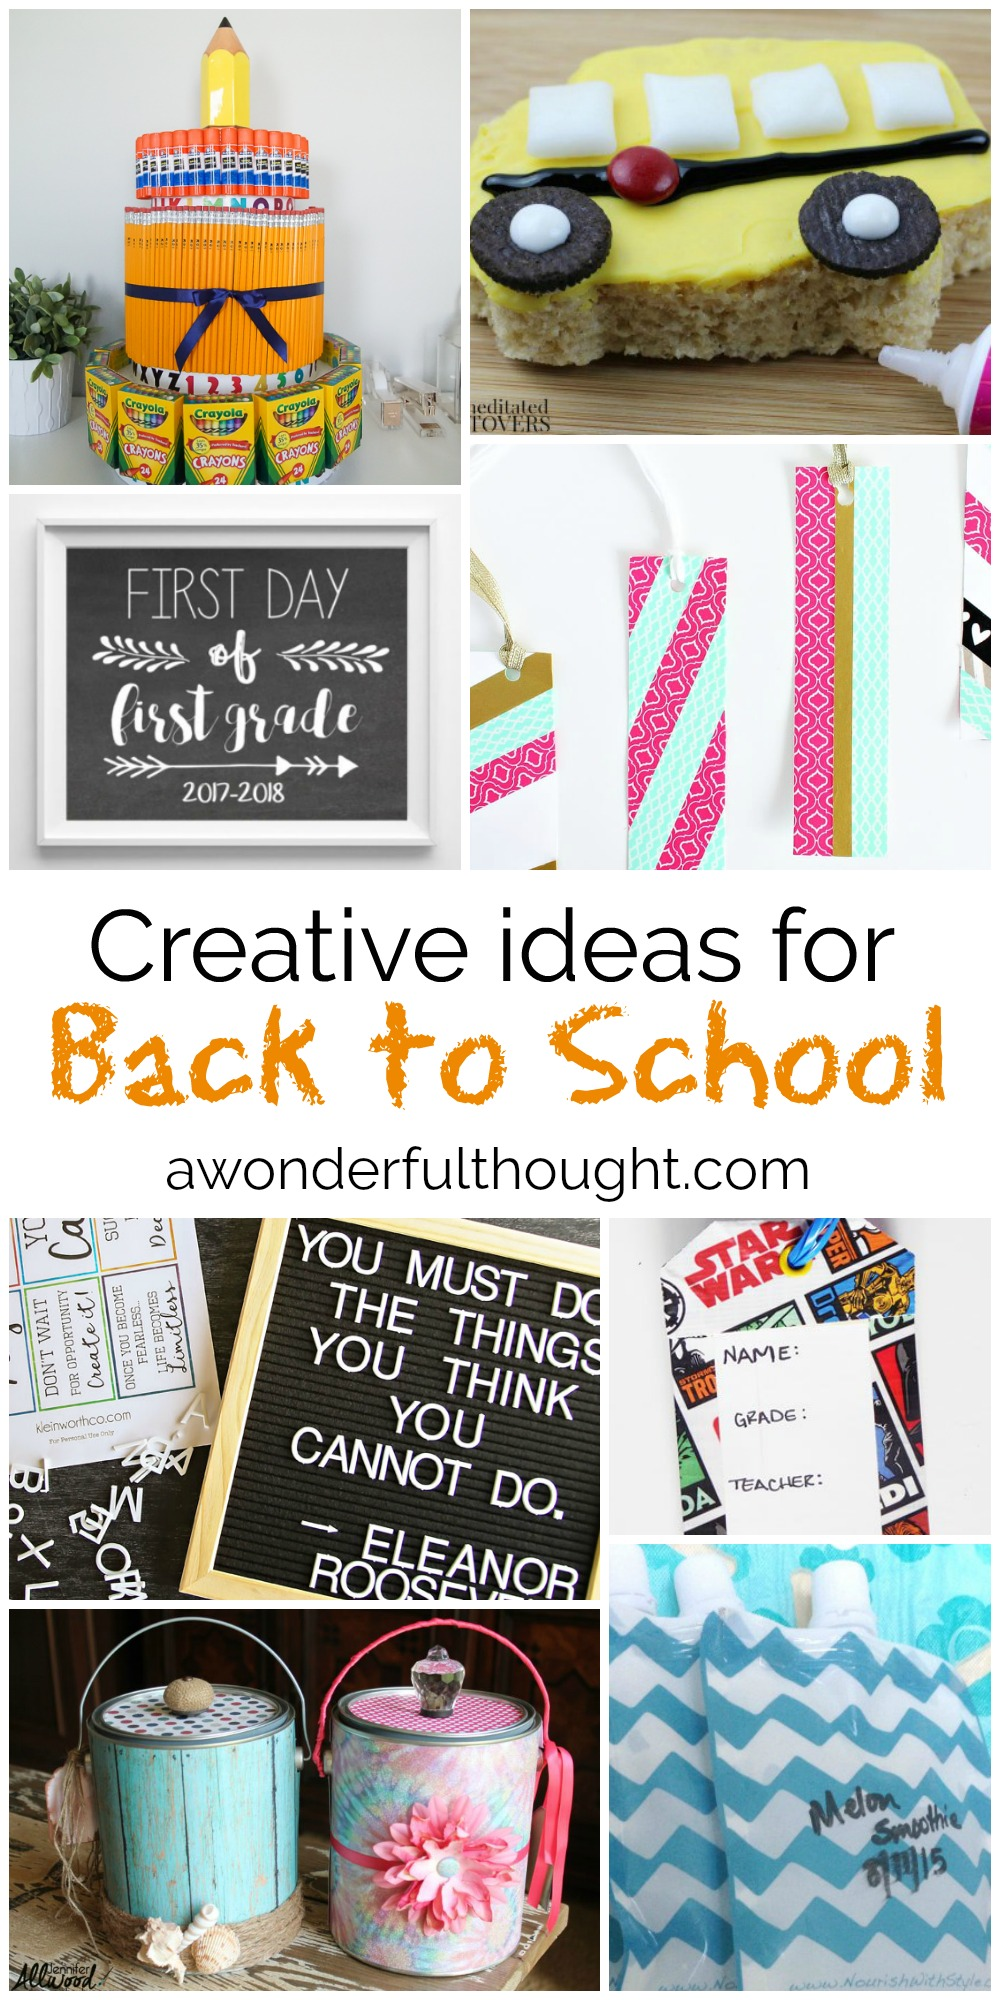 Creative Back to School Ideas | awonderfulthought.com